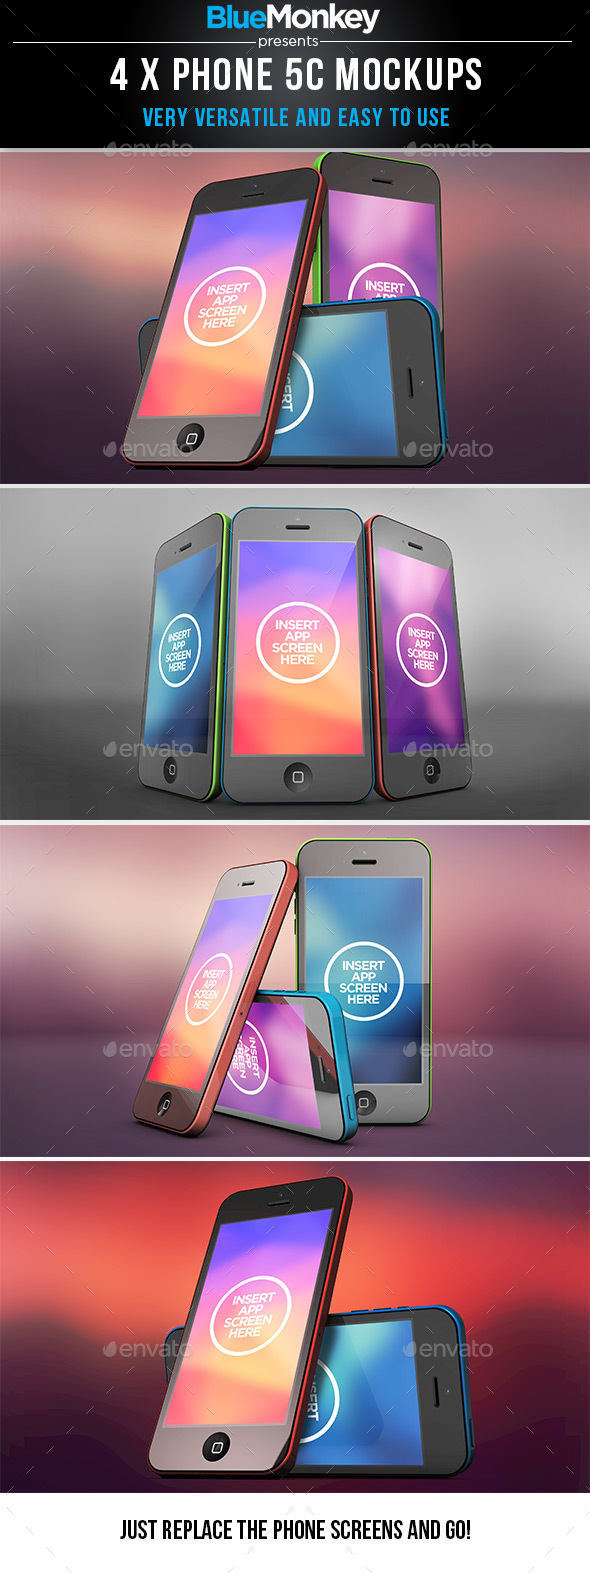 4 unique Phone 5C mockup compositions